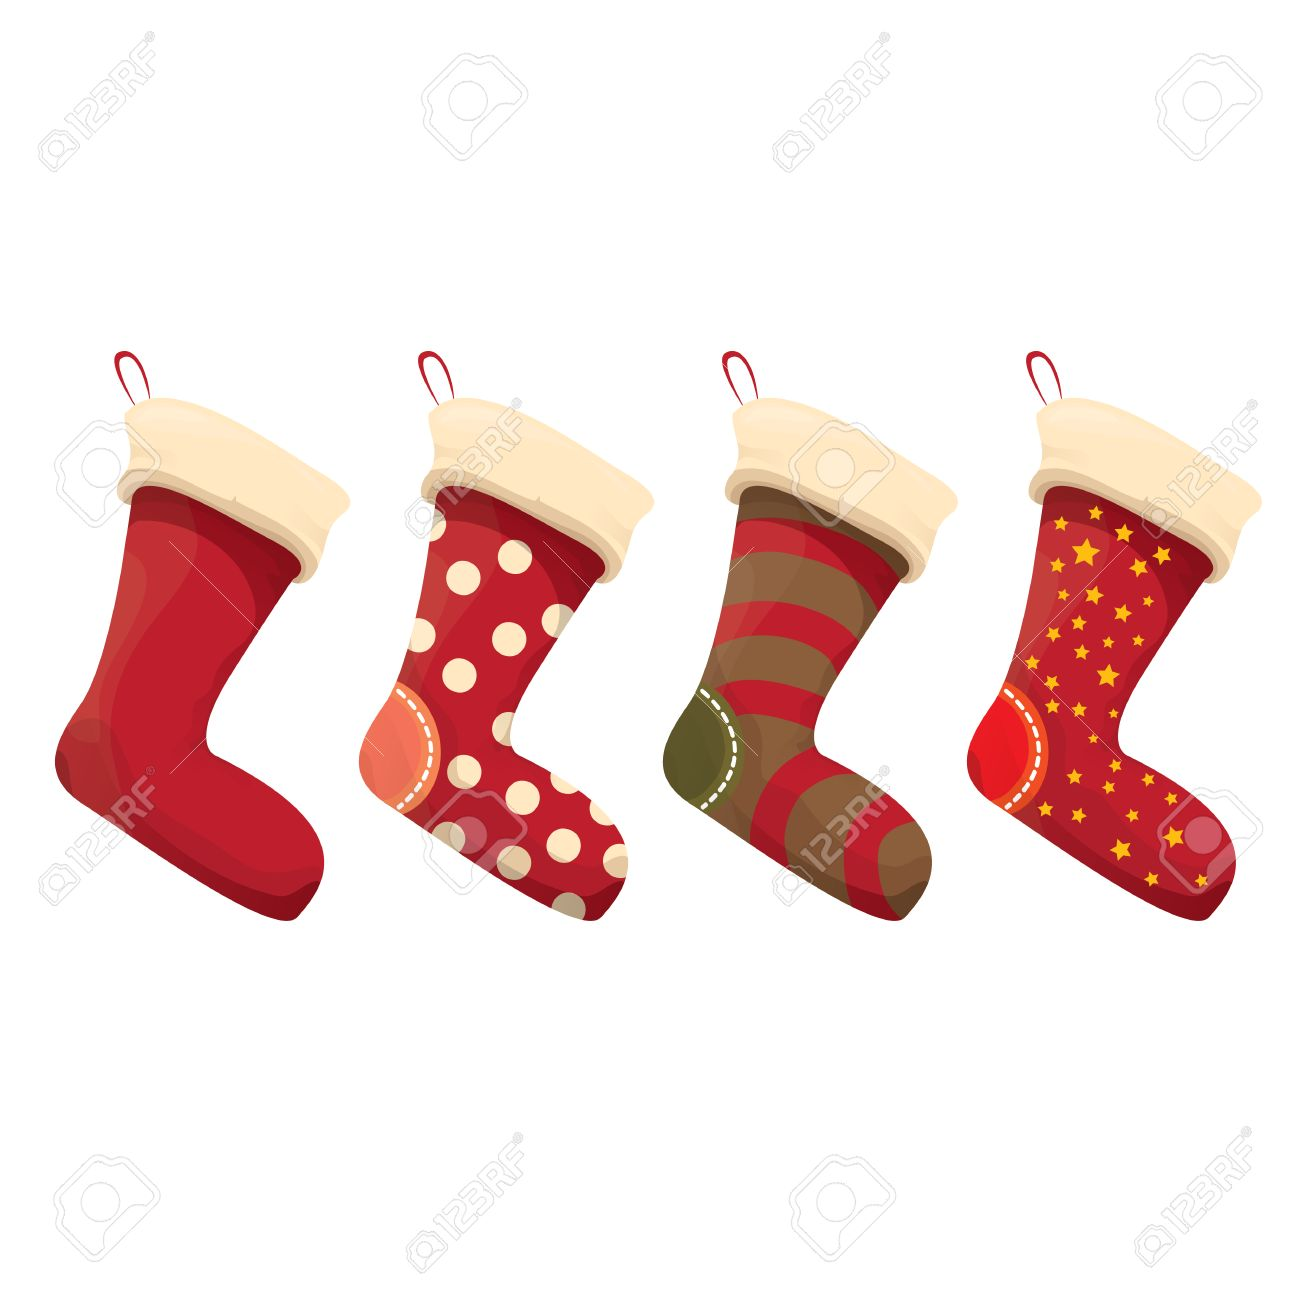 Christmas Stockings Cartoon.Cartoon Cute Christmas Stocking With Color Ornament Isolated